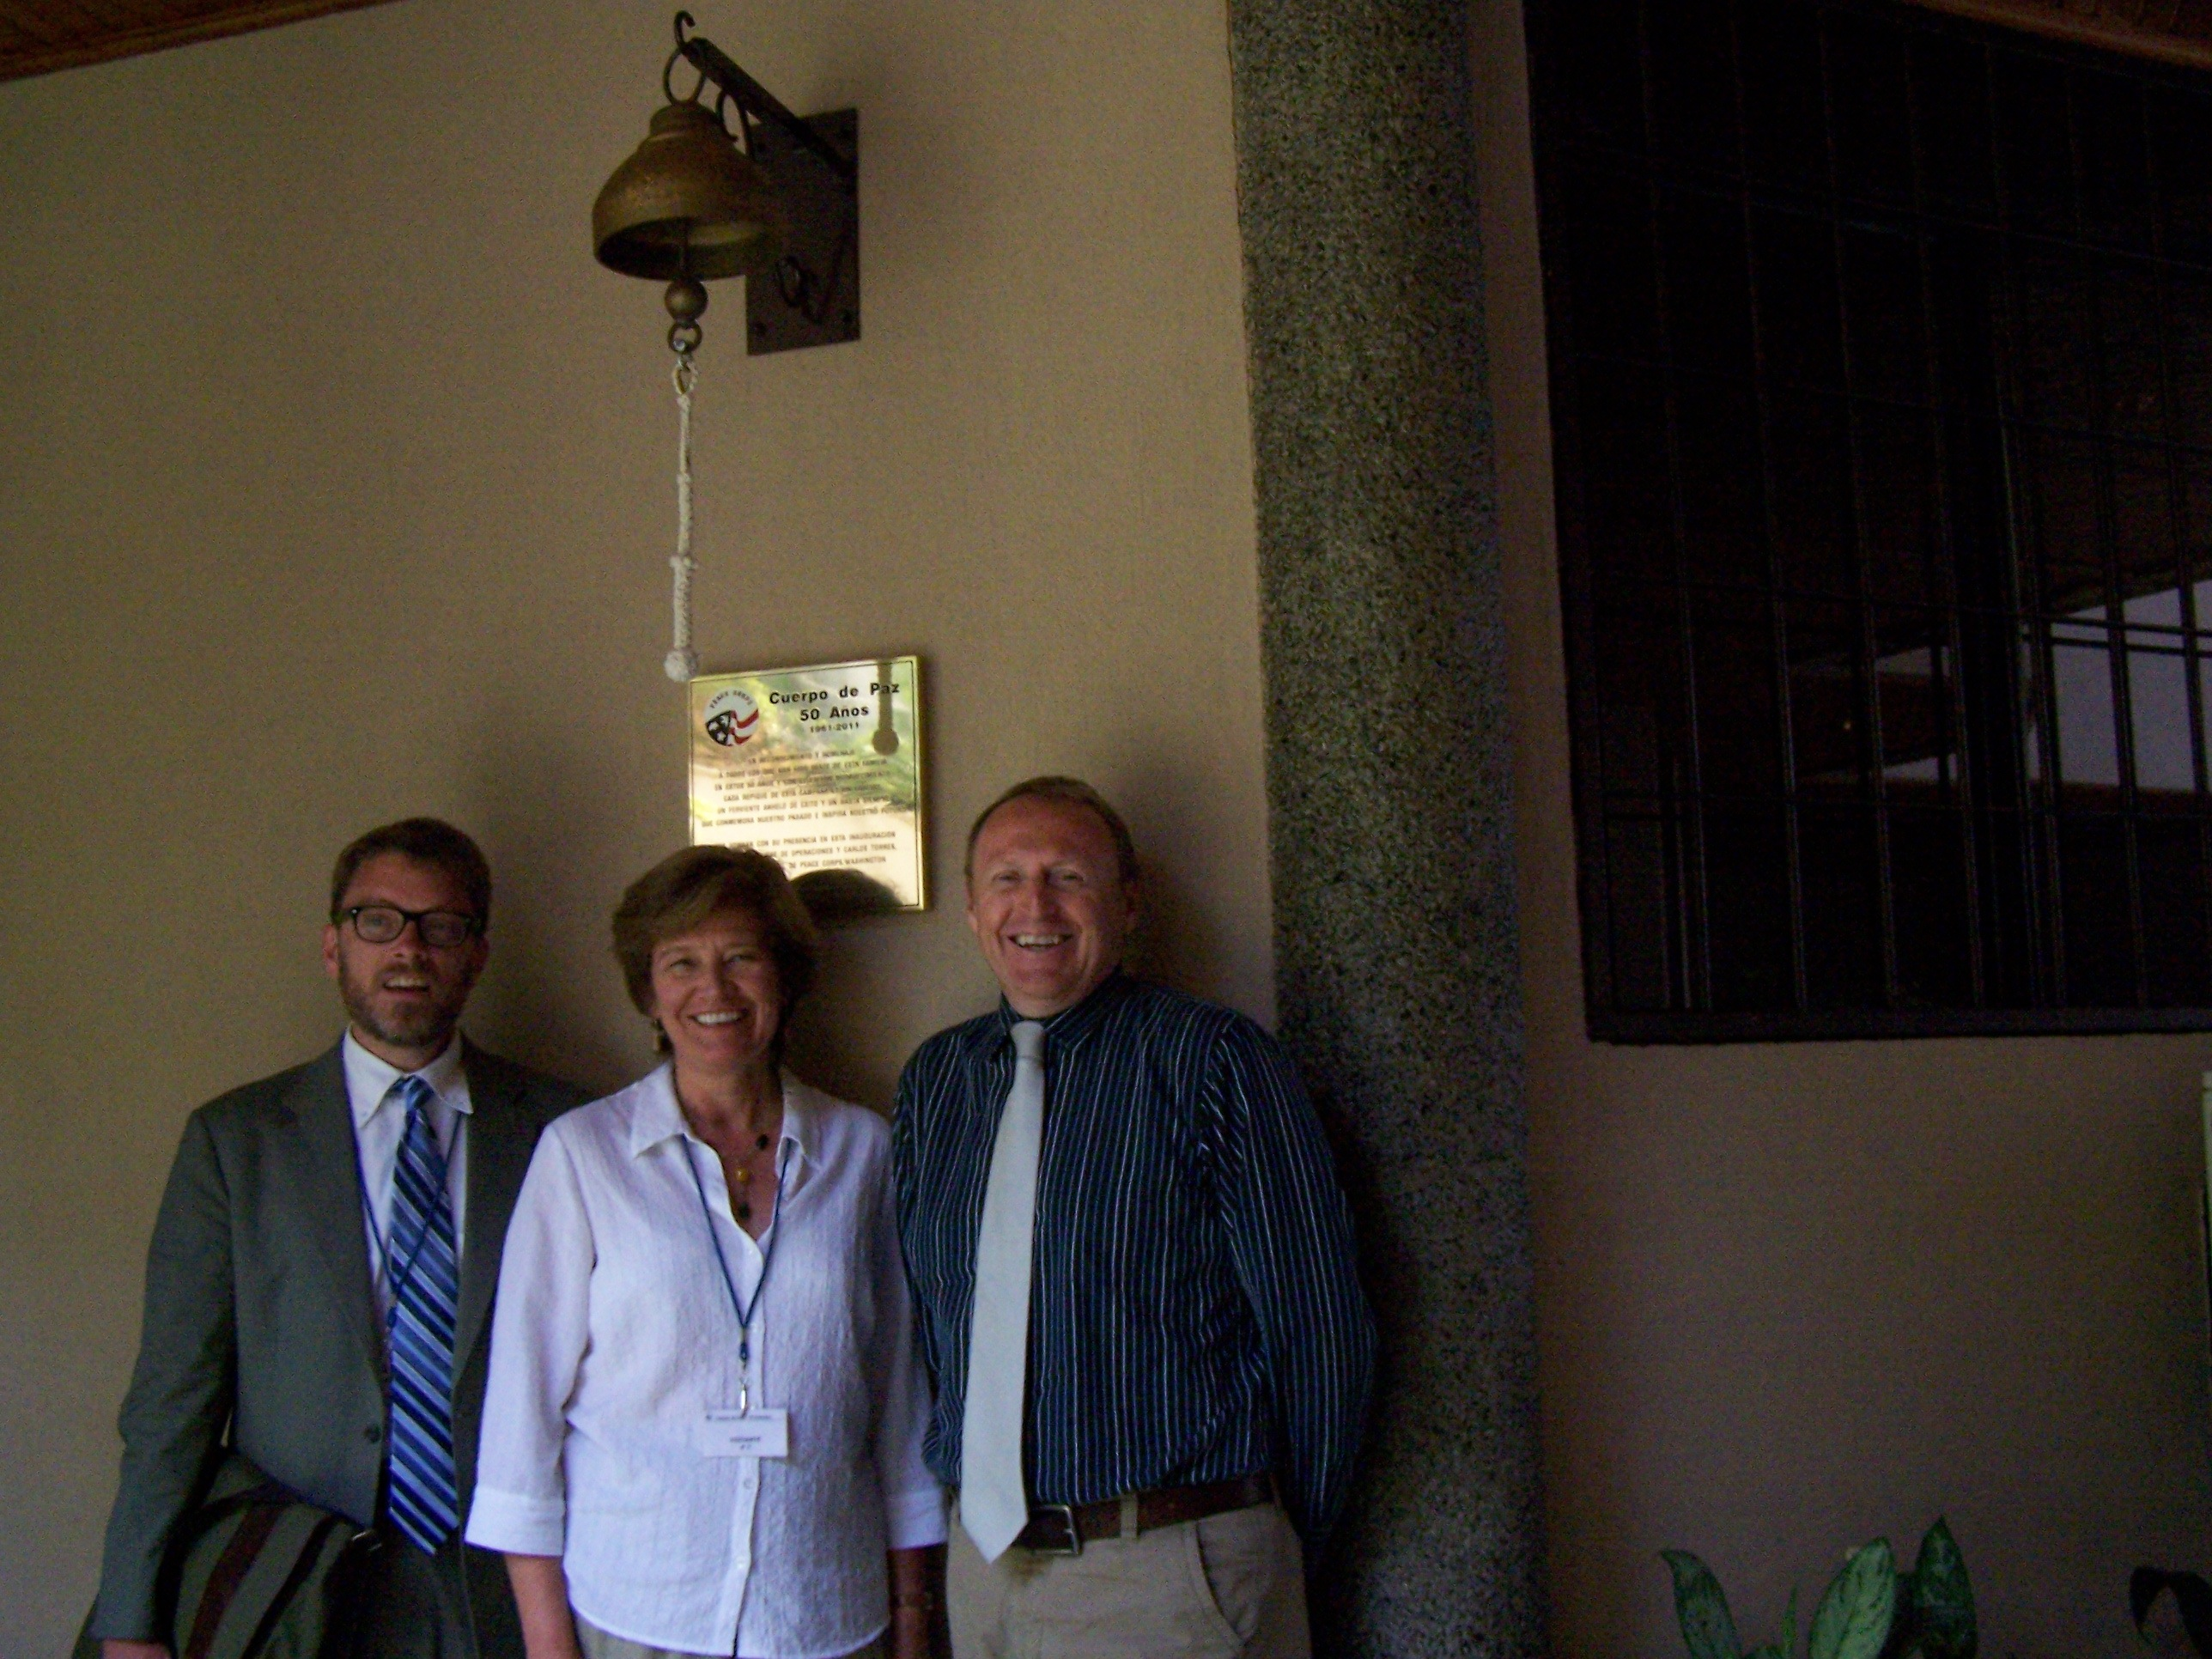 Professors Jeff Dayton Johnson and Adele Negro at Peace Corps headquarters, San Salvador, with Country Director Jaime Kuklinski